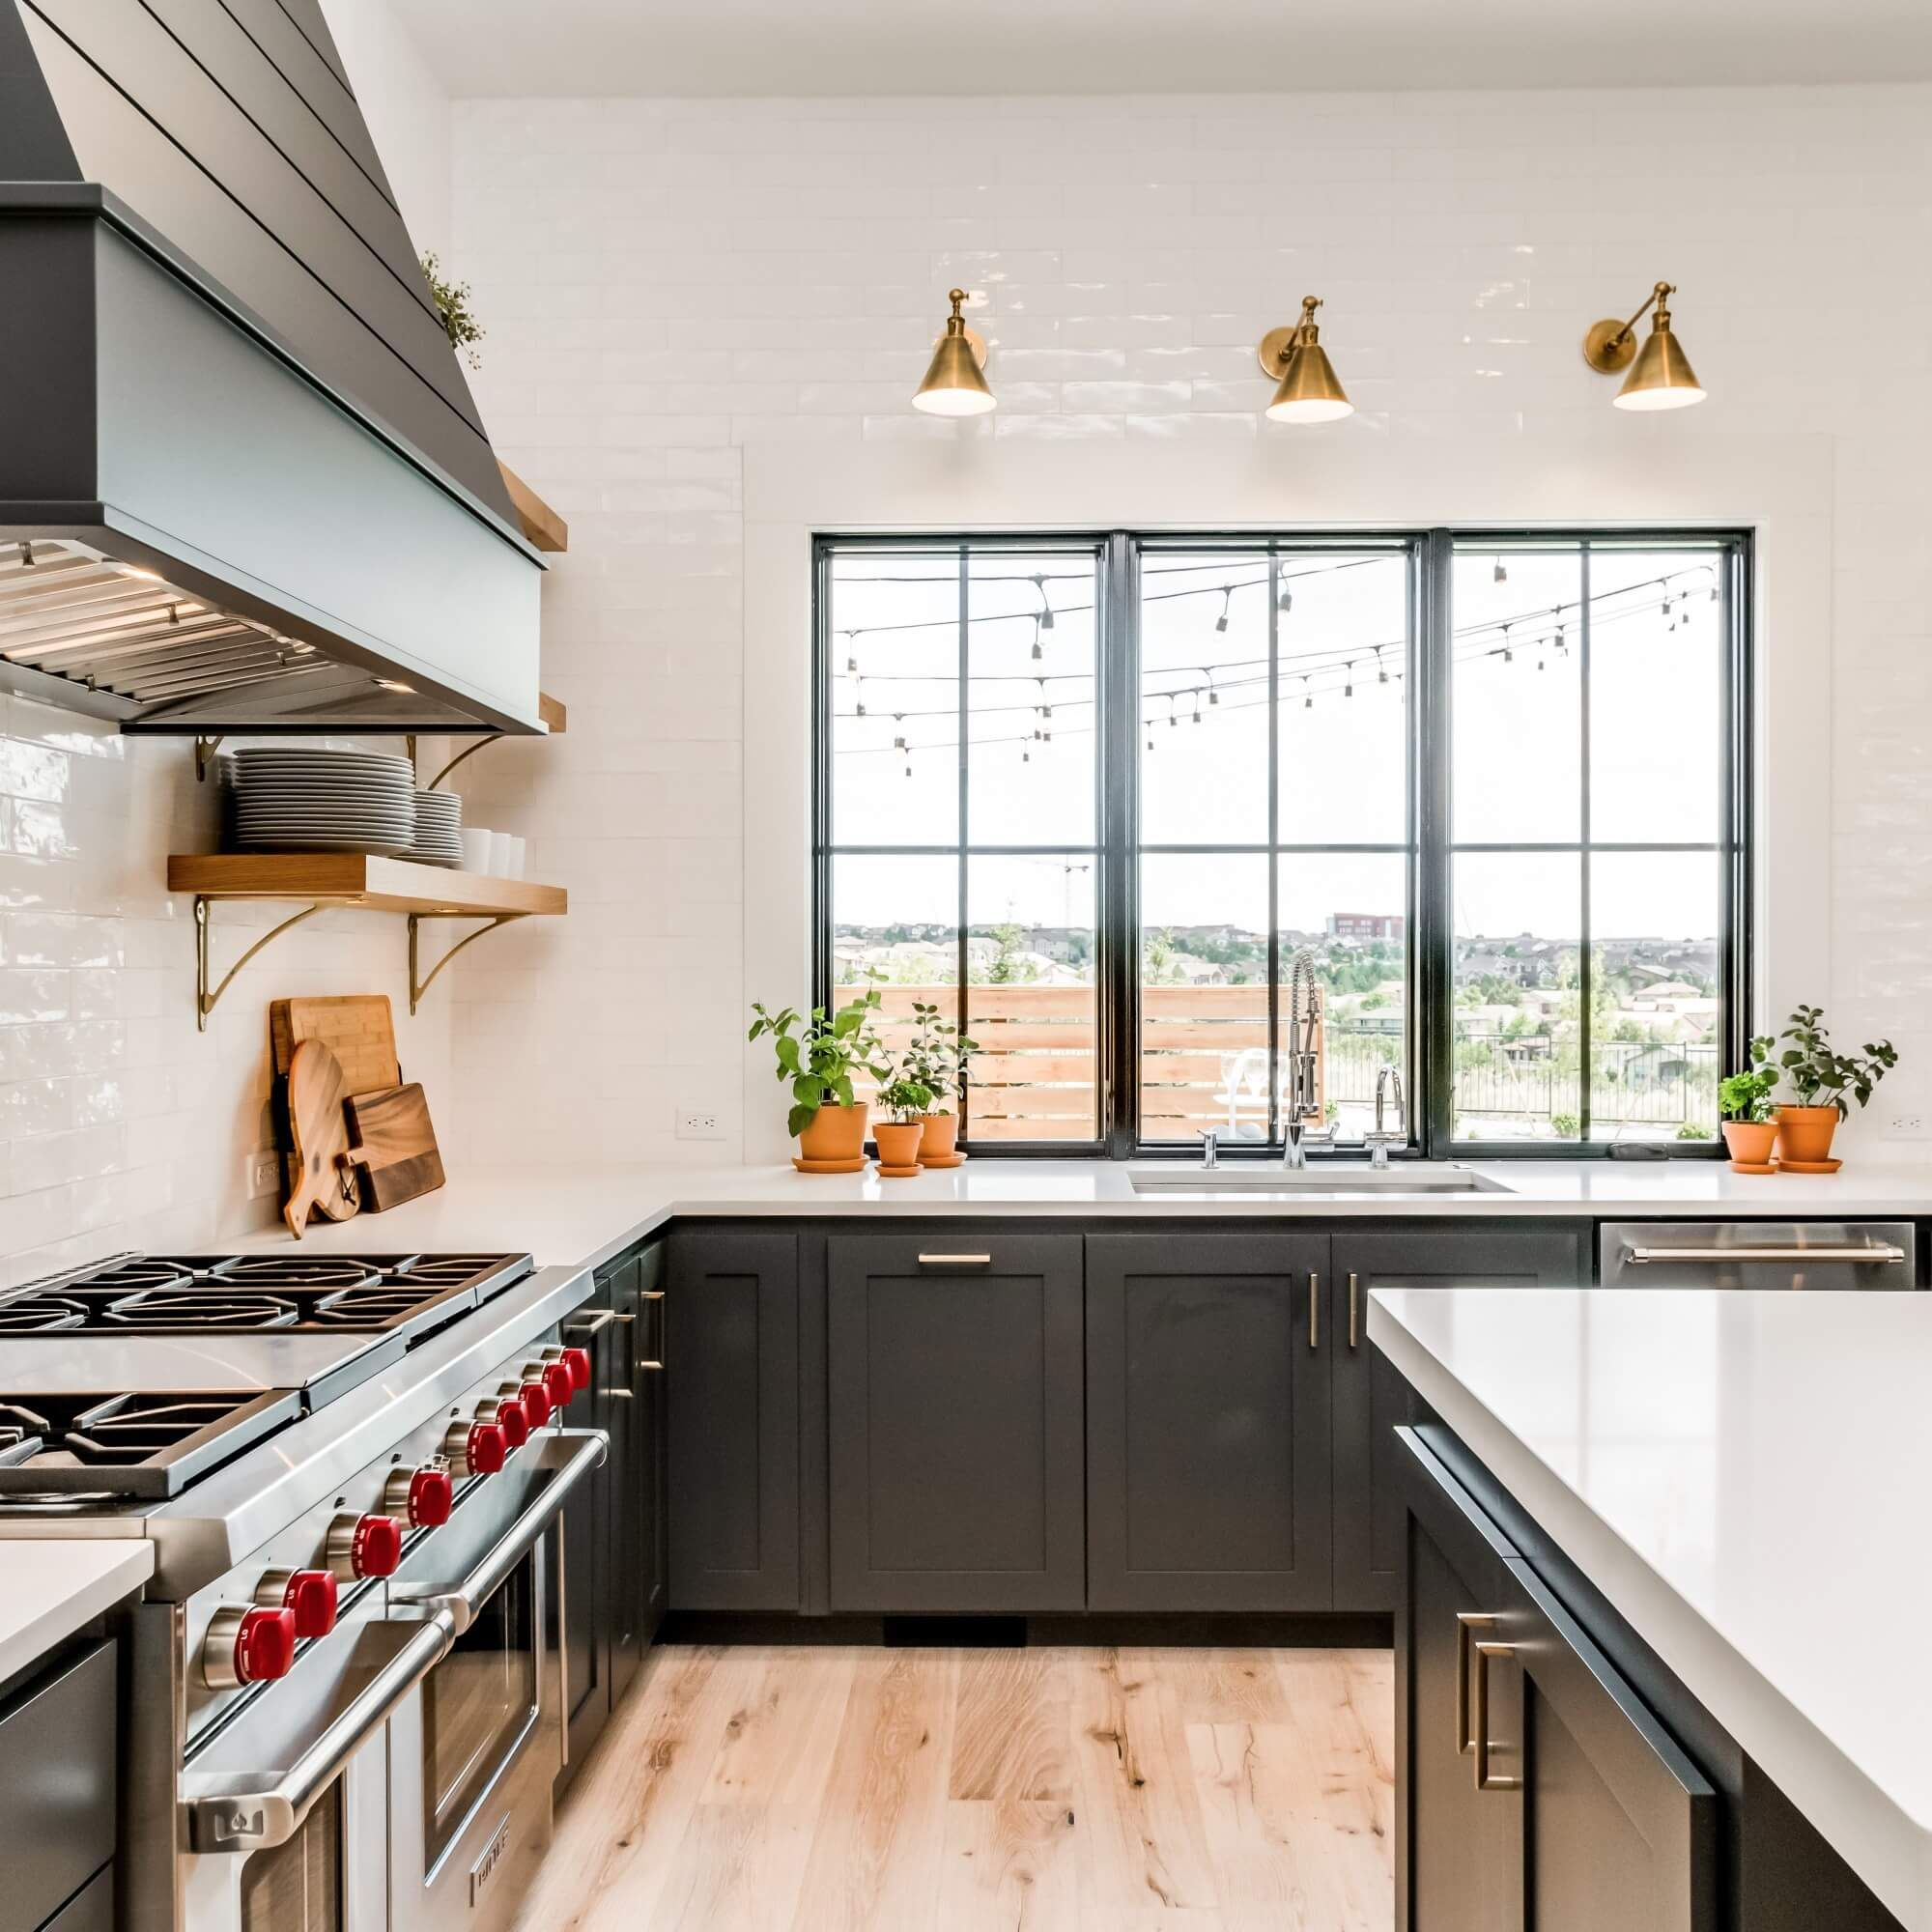 The Small Accents Added To This Kitchen Make It Seem Like A Space With Life Which Is Great For Staging Home Kitchens Kitchen Range Hood Kitchen Interior